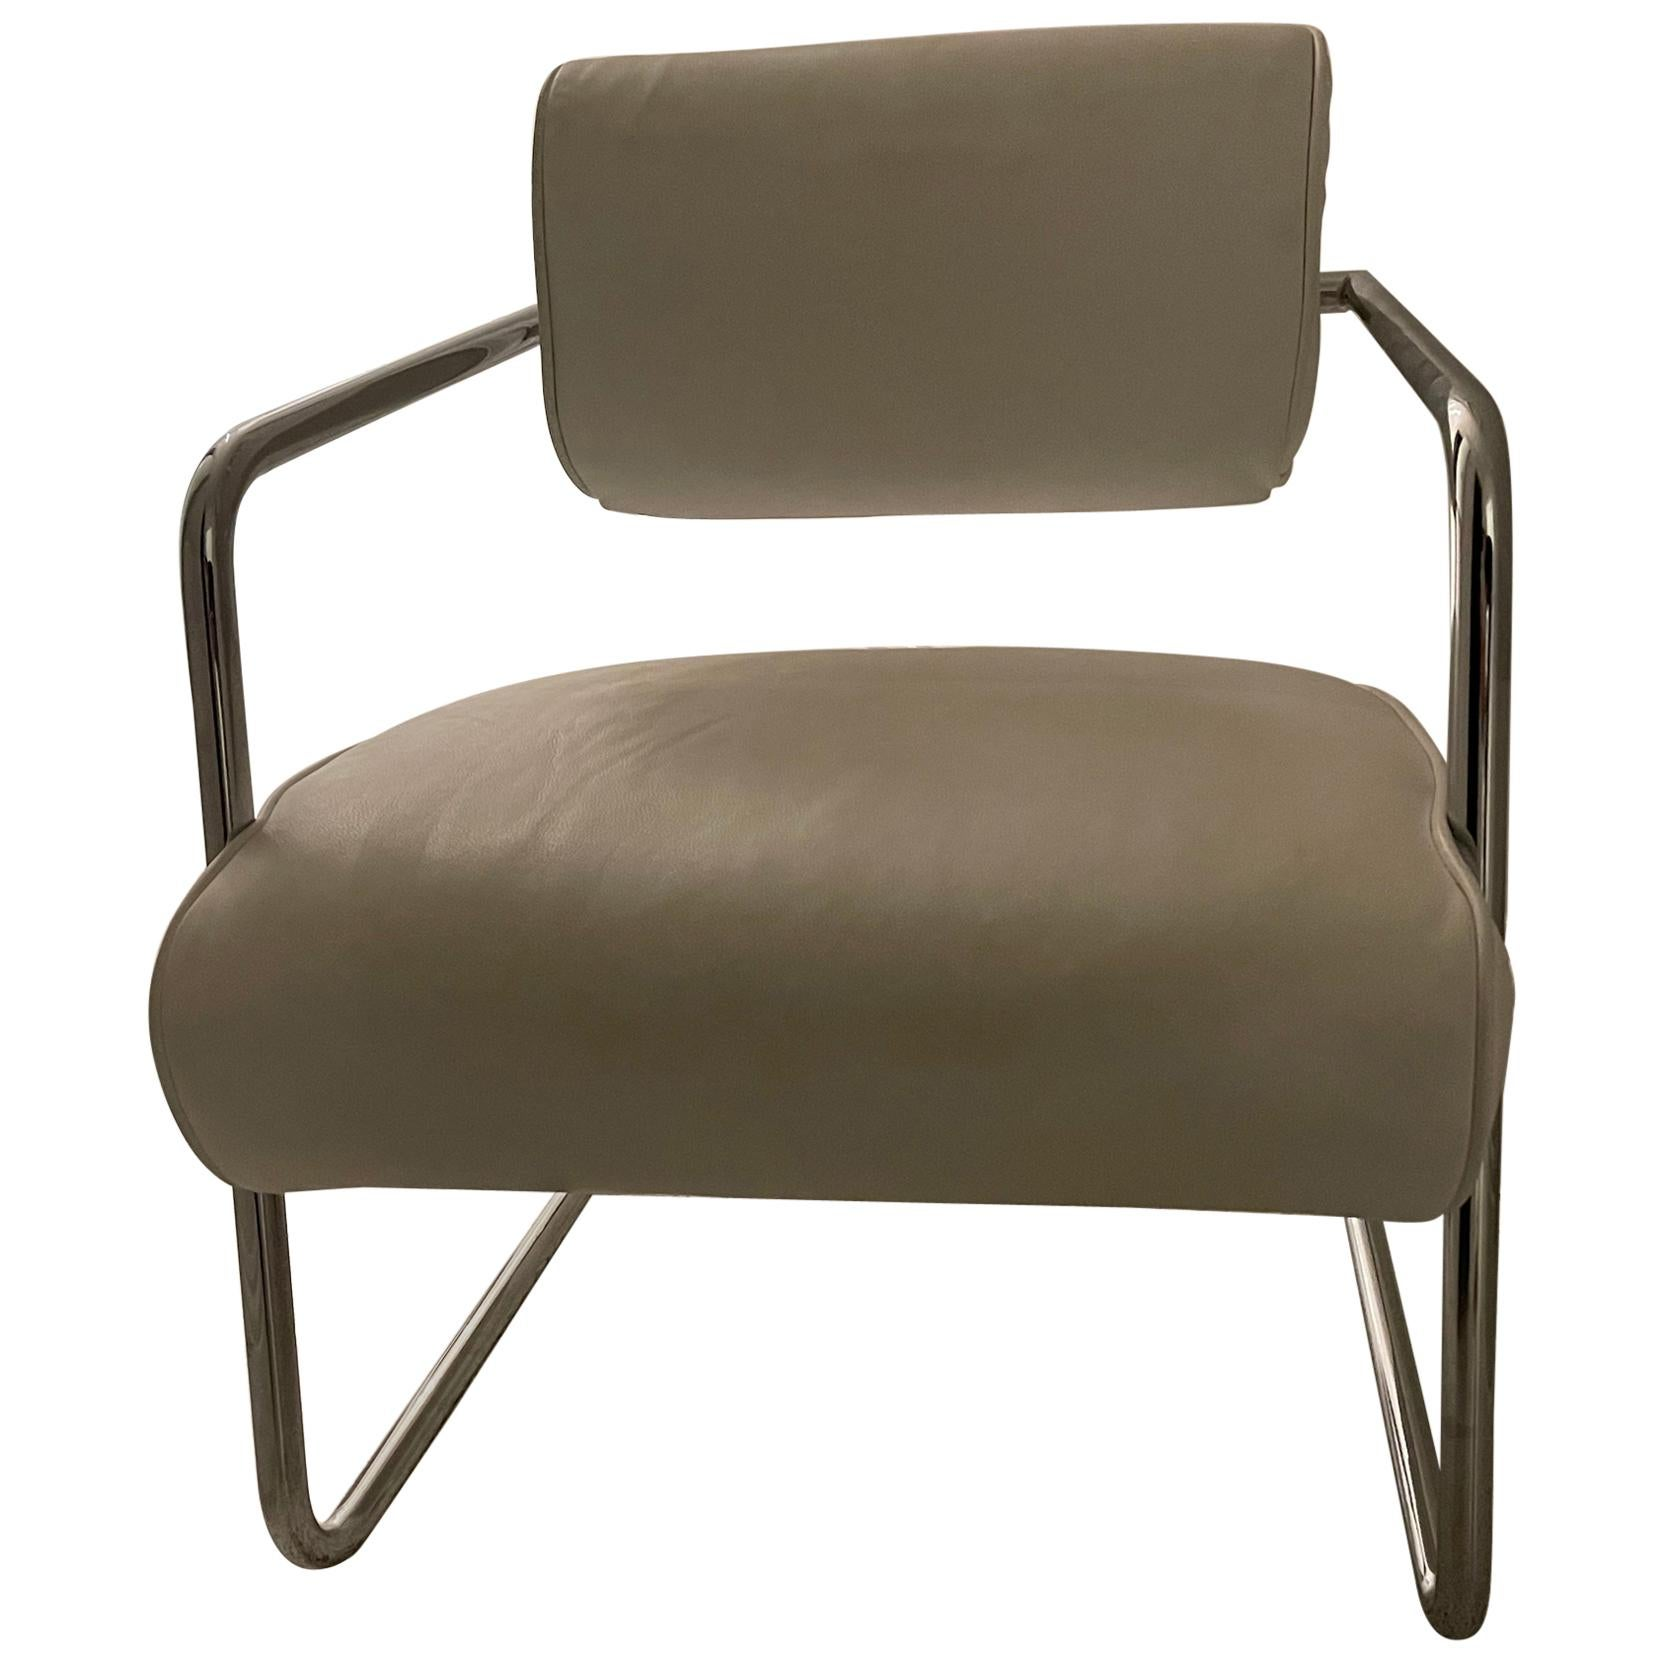 Bonaparte Armchair by Eileen Gray manufactured by ClassiCon